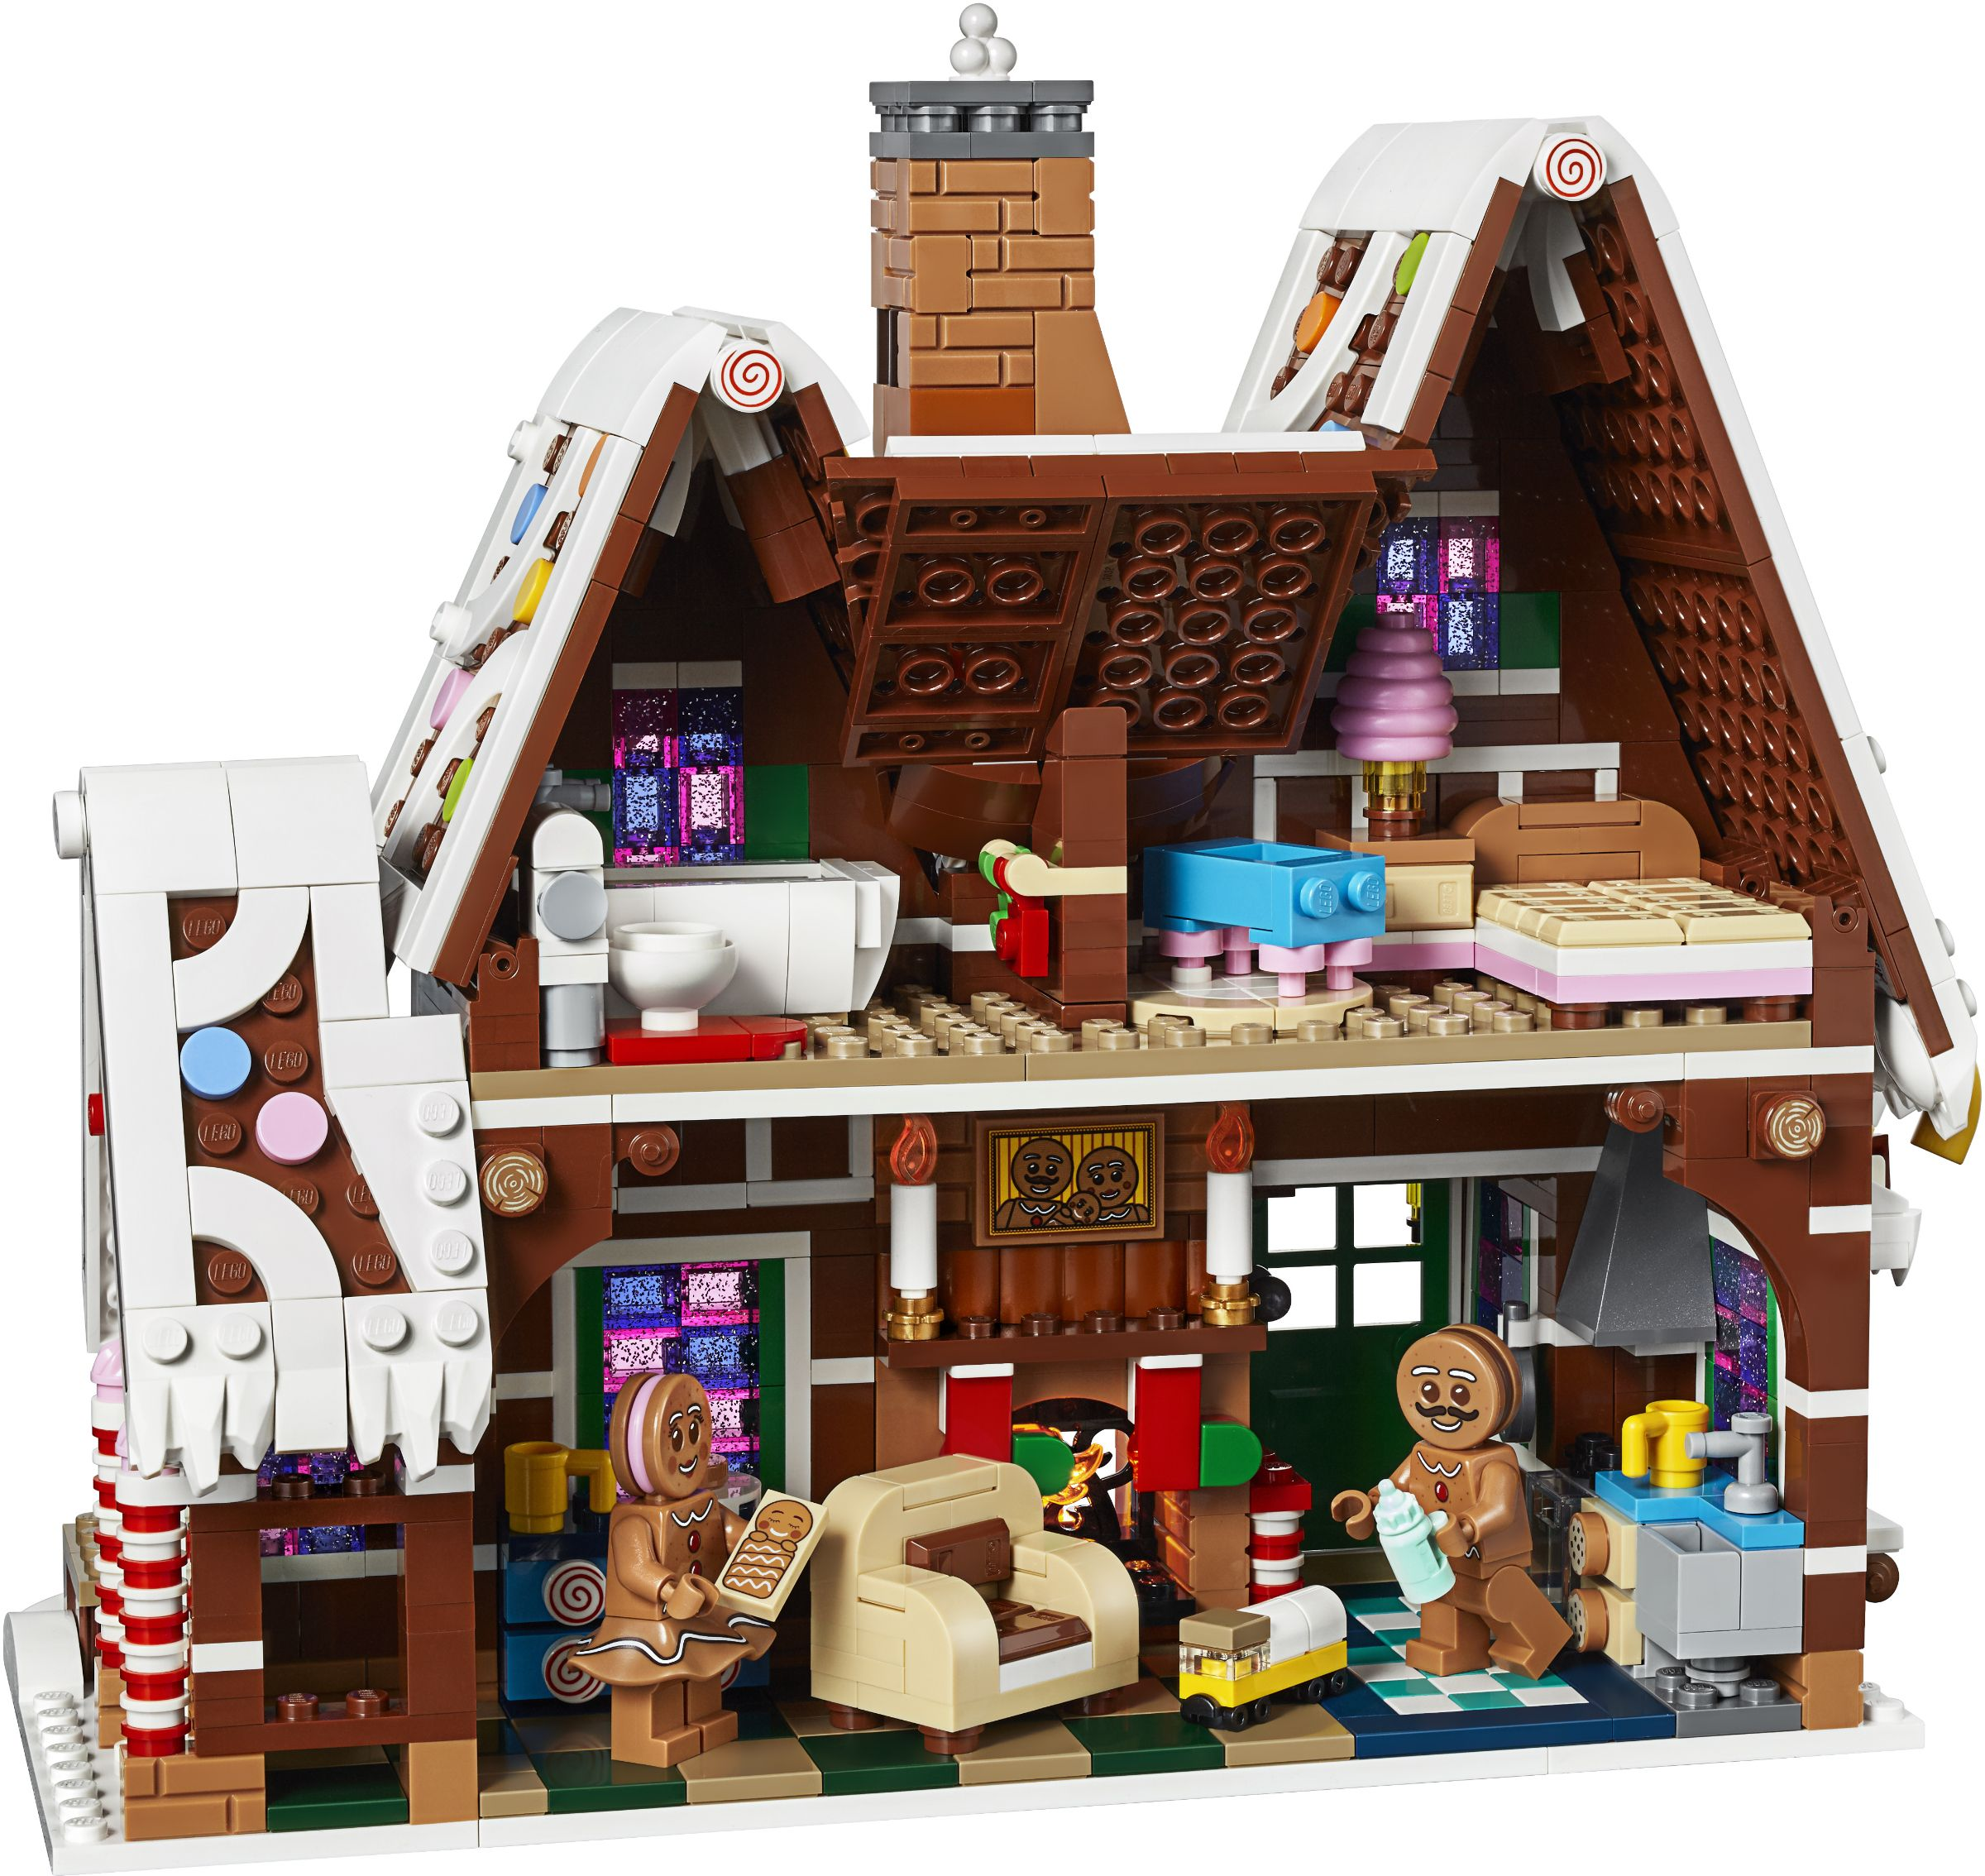 This Delicious Gingerbread House Is This Year S Winter Village Set In 2020 Lego Gingerbread House Lego Creator Lego Creator Sets